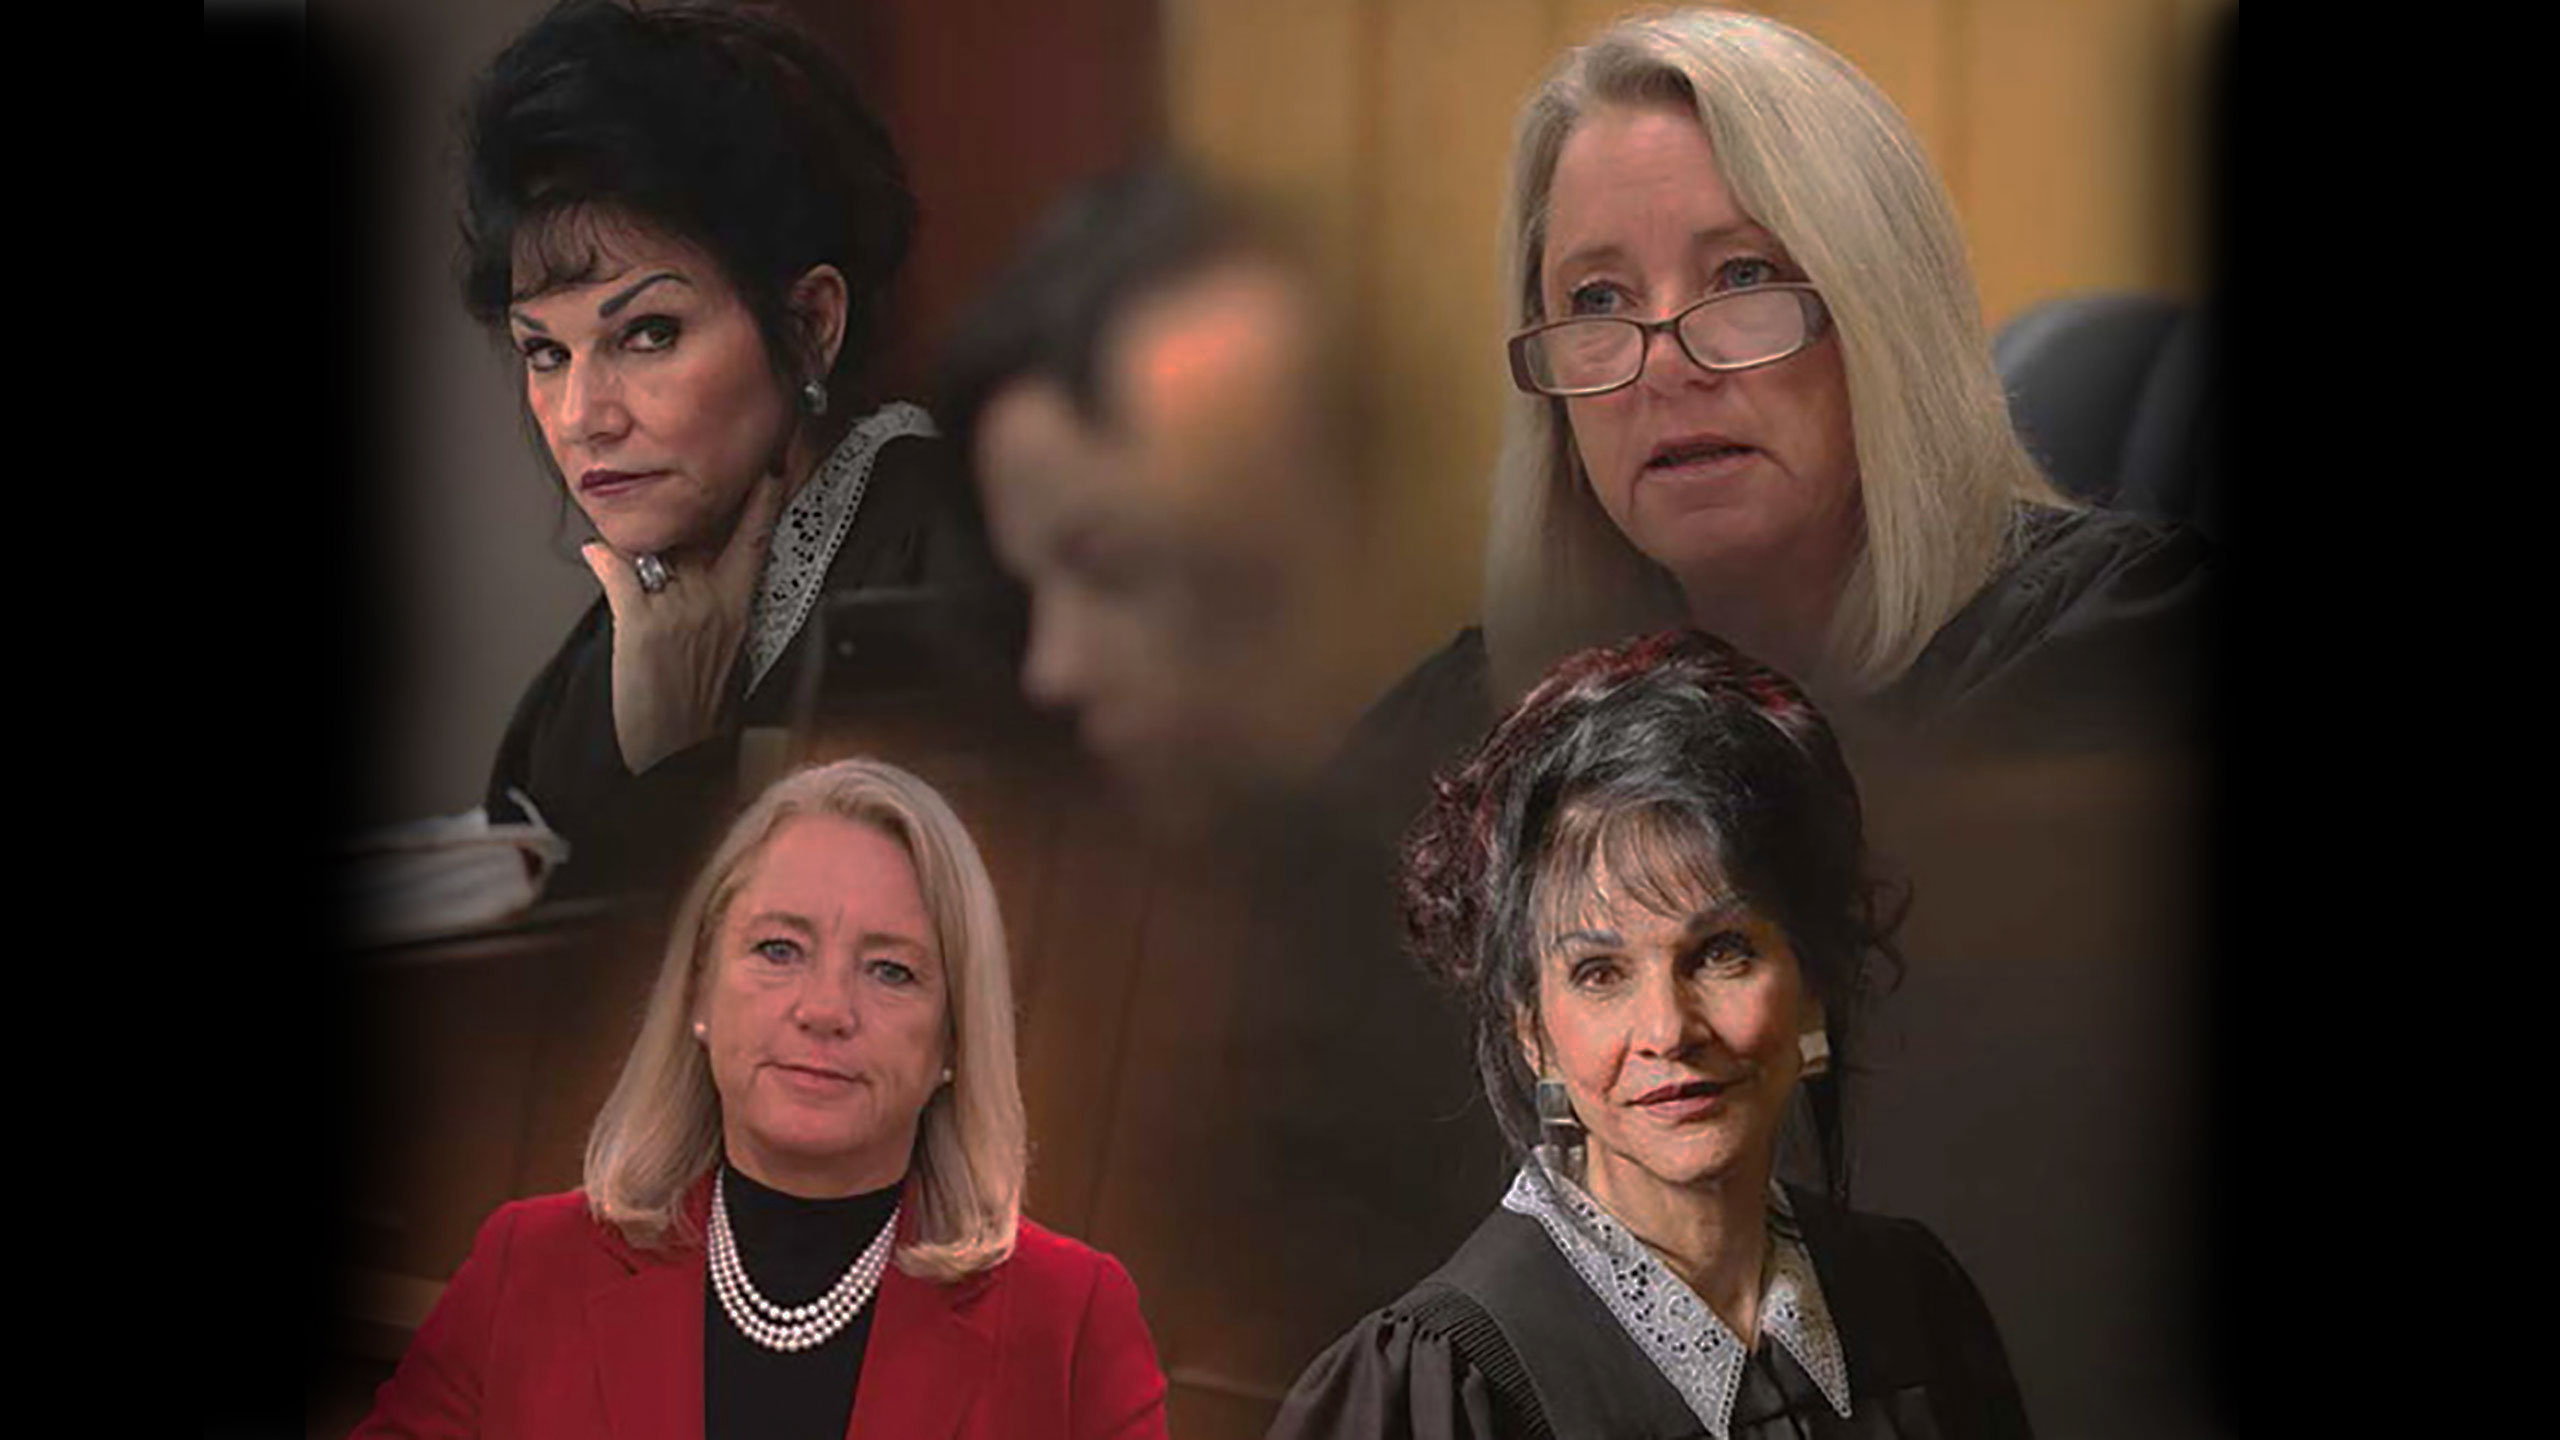 Montage of Judges Rosemarie Aquilina and Judge Janice Cunningham